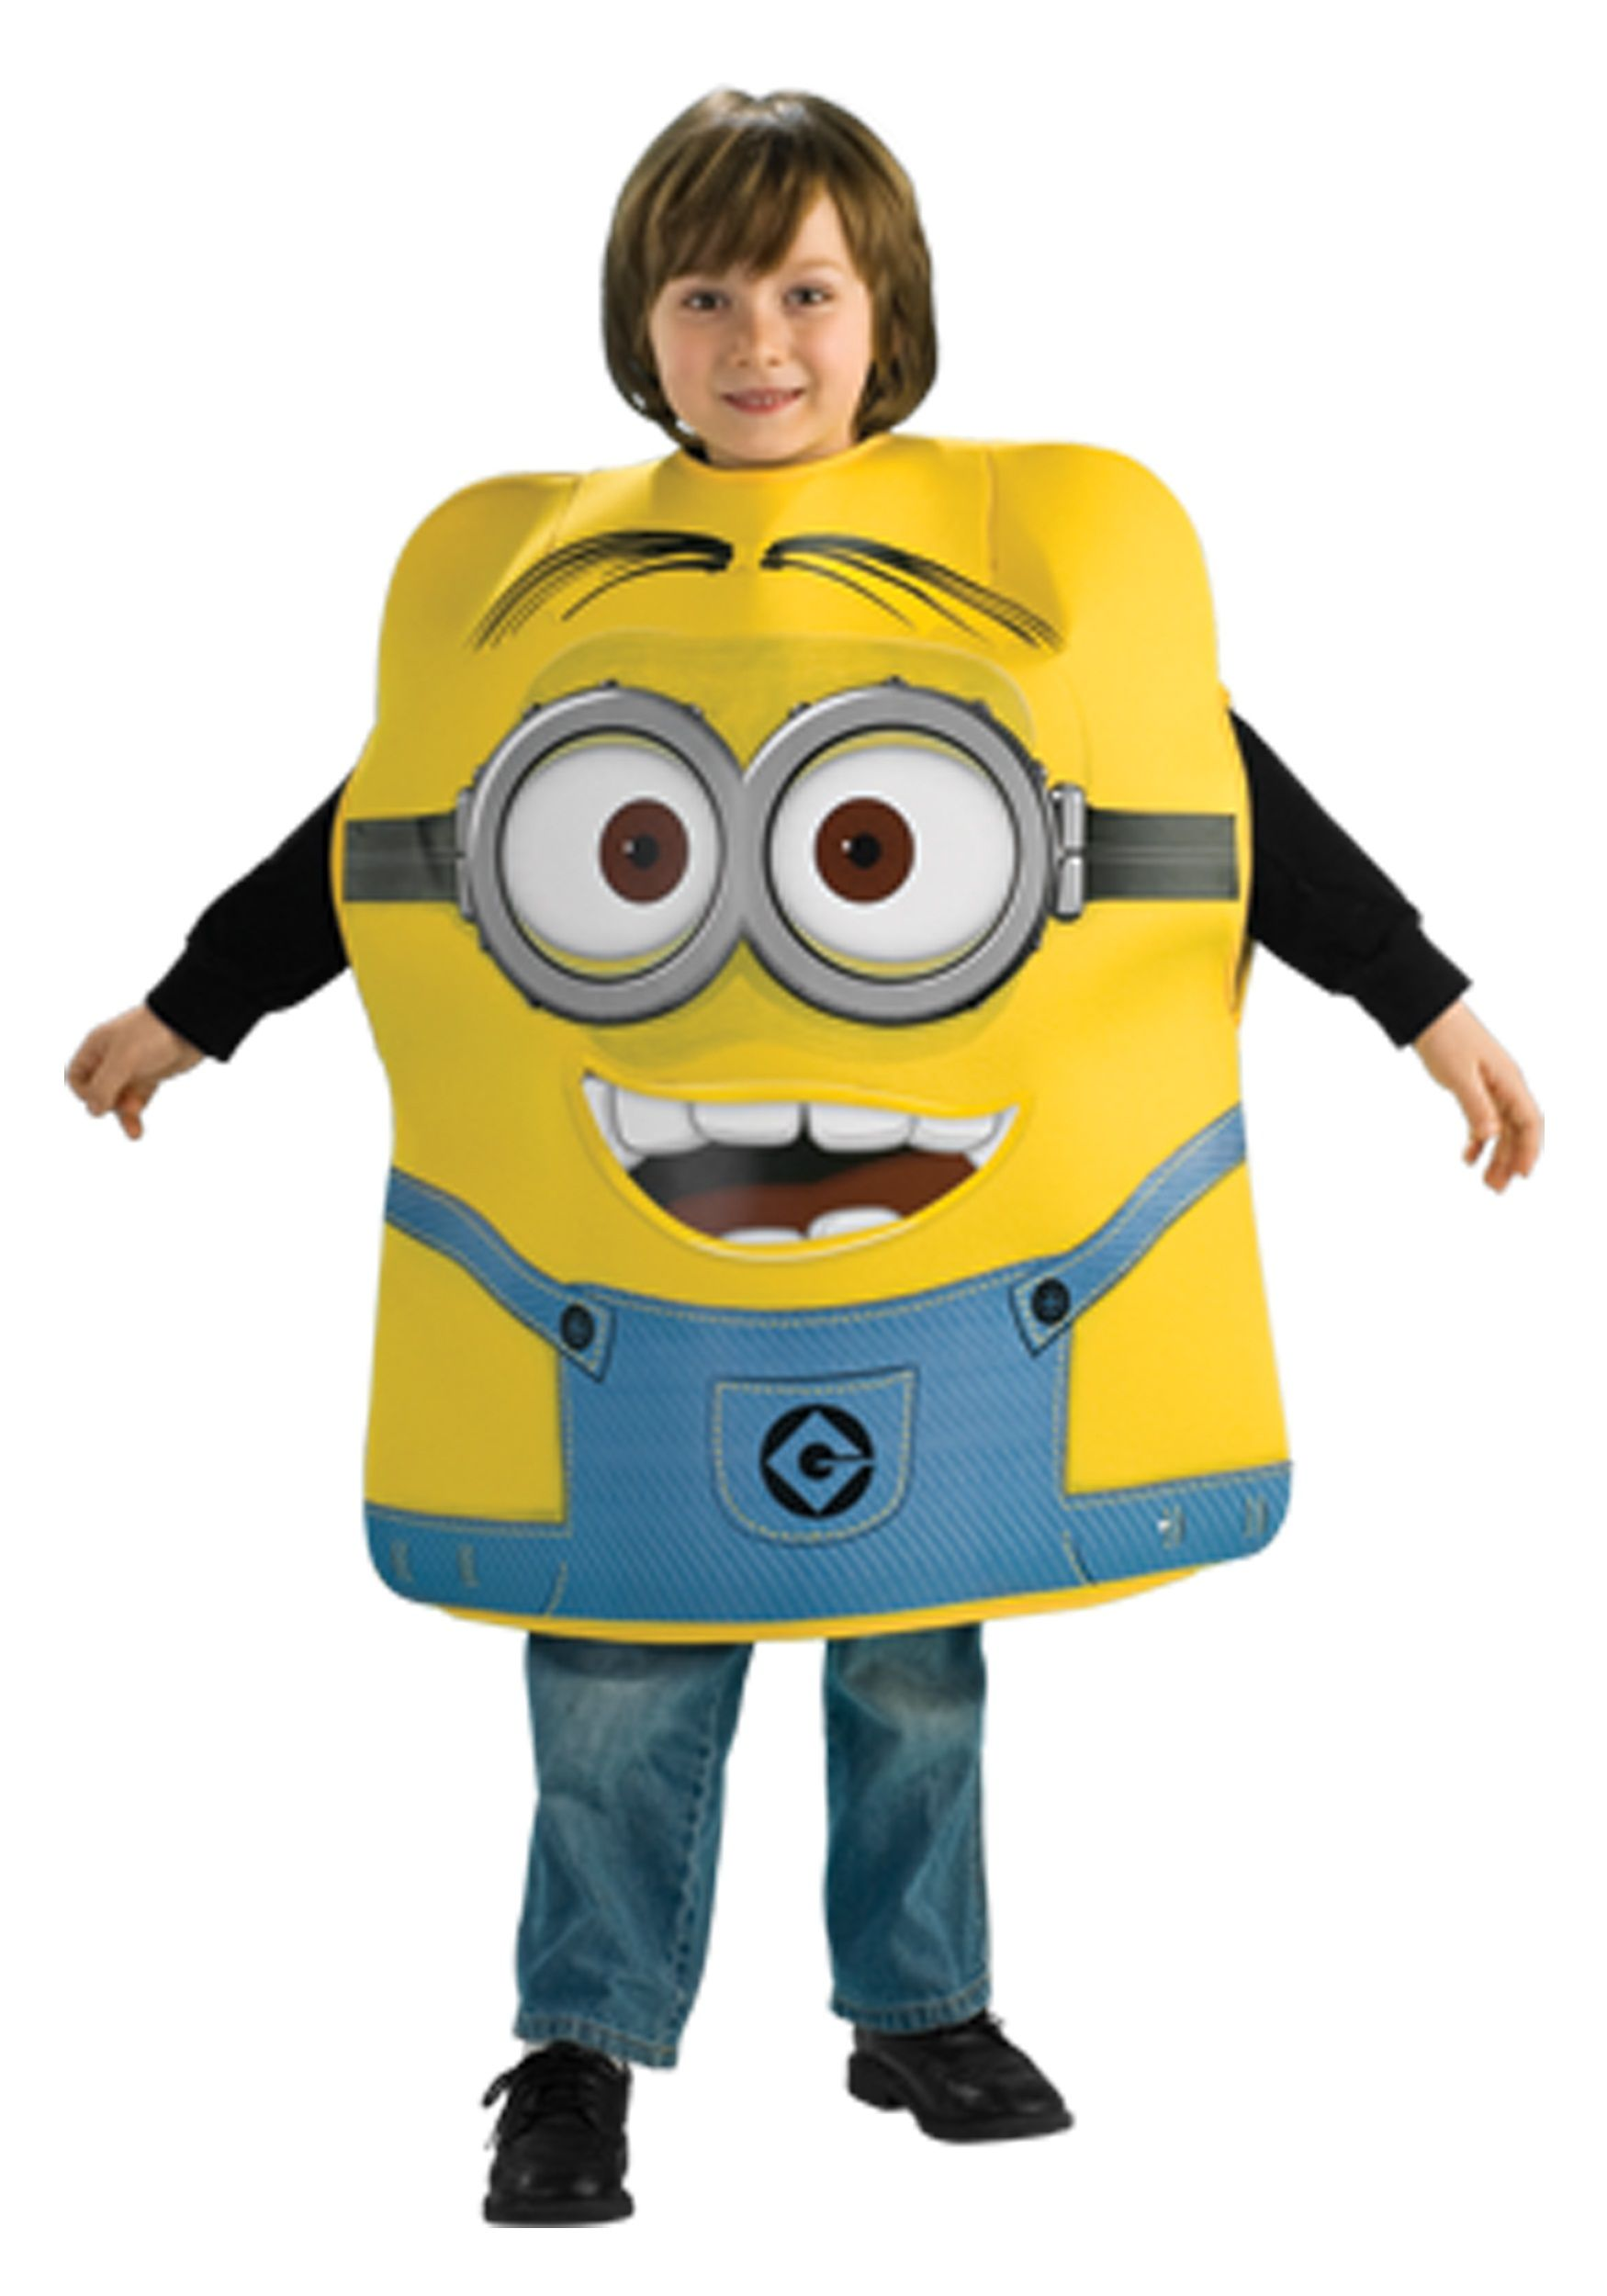 Child Minion Dave Costume | Costumes, Halloween costumes and Boy ...